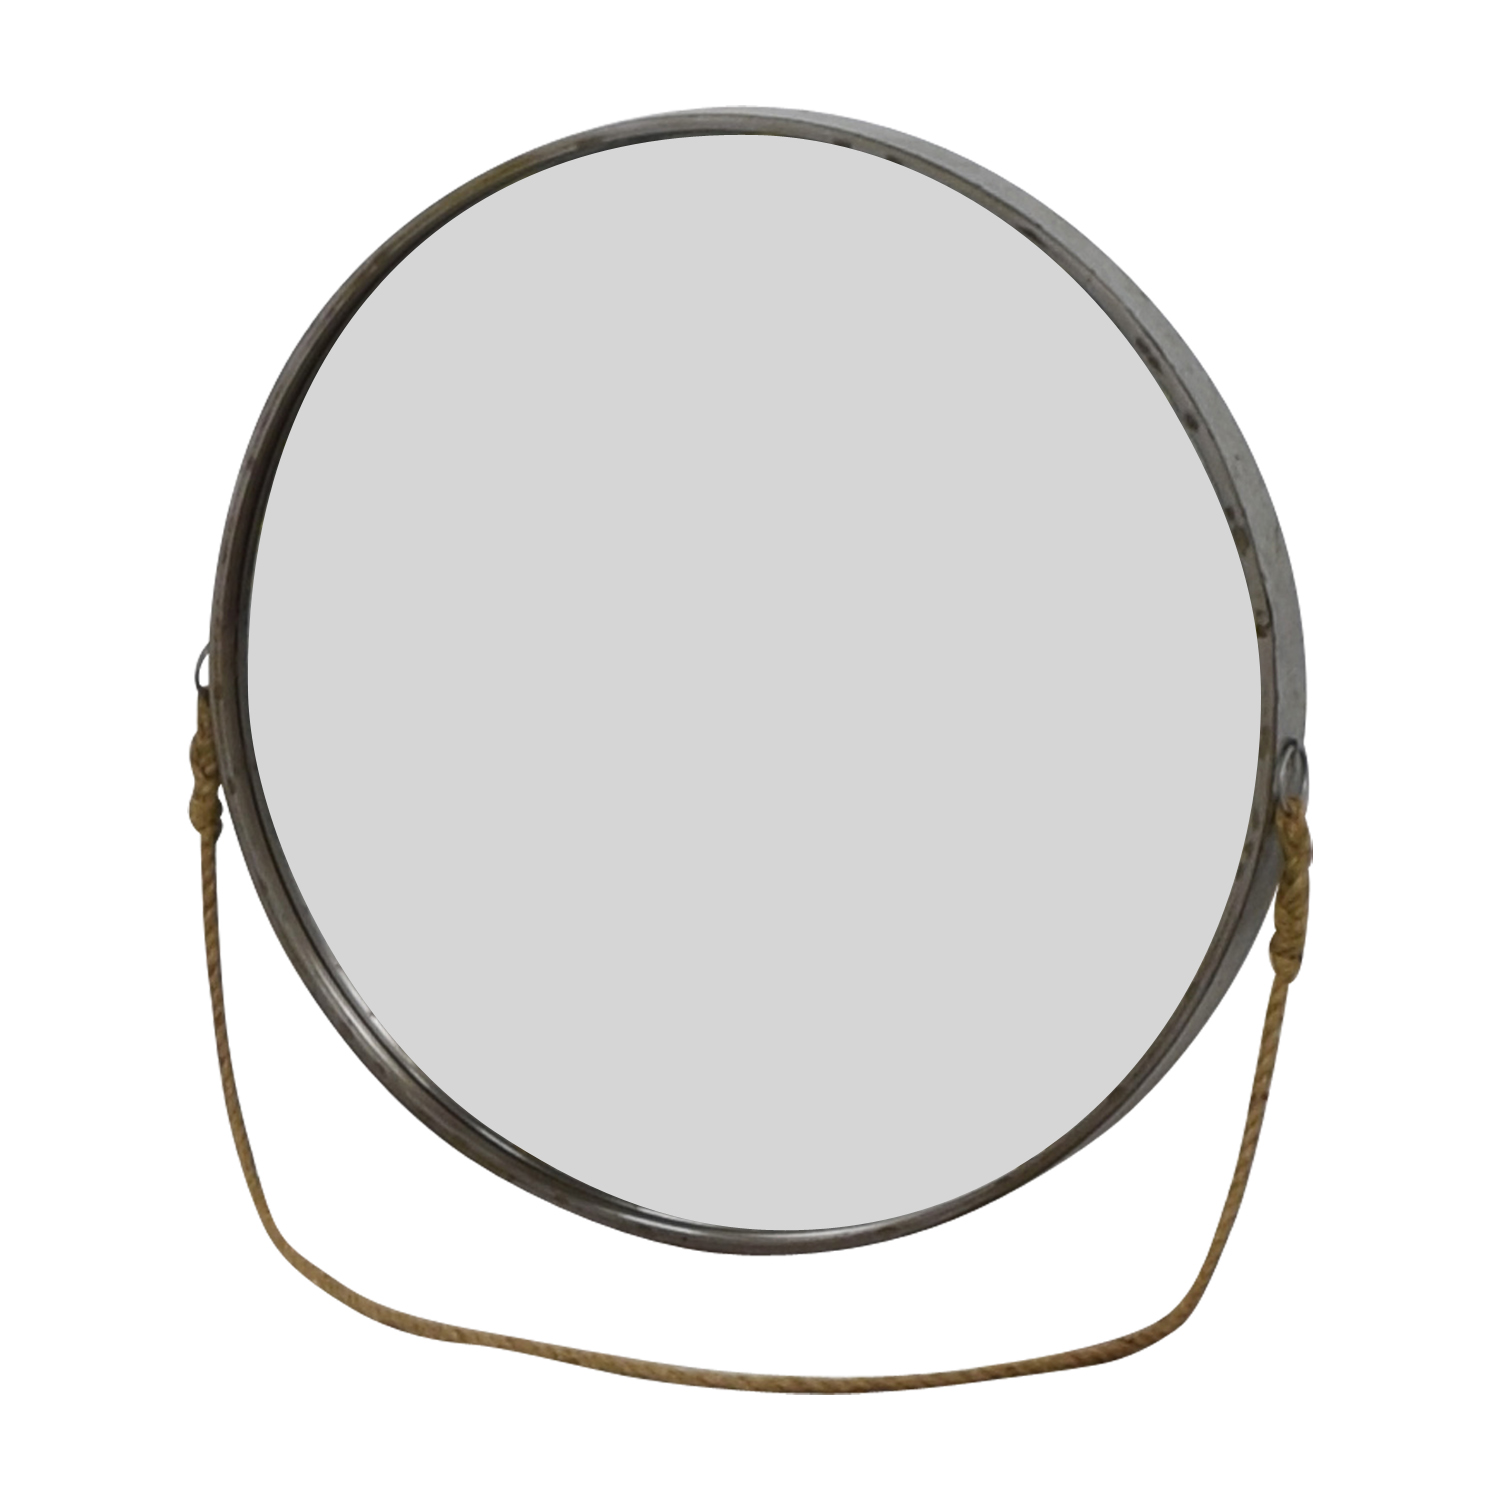 buy Bed Bath & Beyond Round Hanging Mirror Bed Bath & Beyond Mirrors